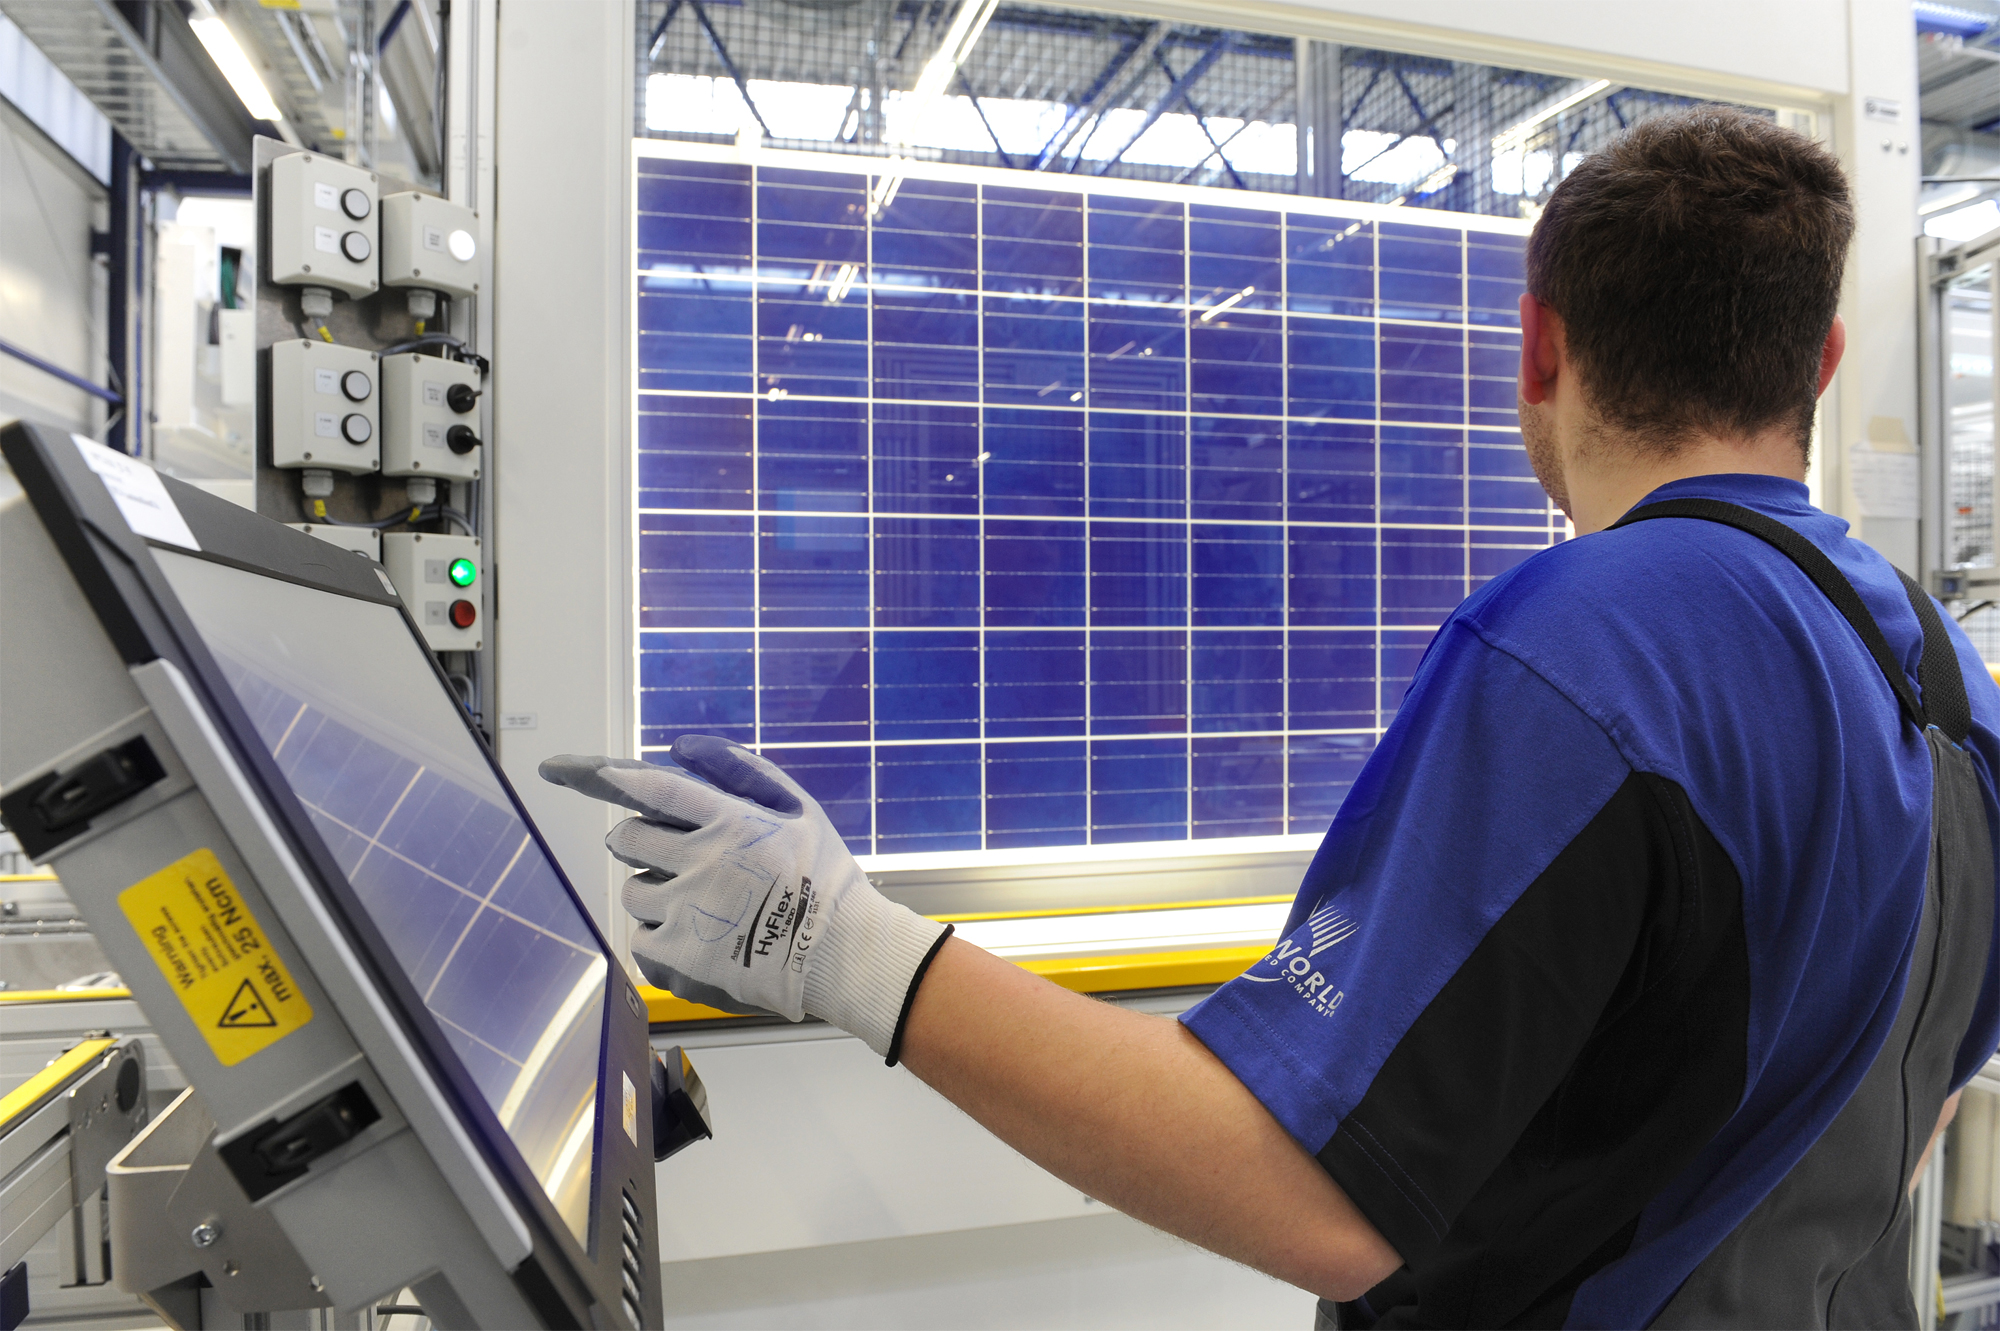 SunPower's retooling of the former SolarWorld site in Oregon is one source of future jobs growth. Credit: SolarWorld Americas.